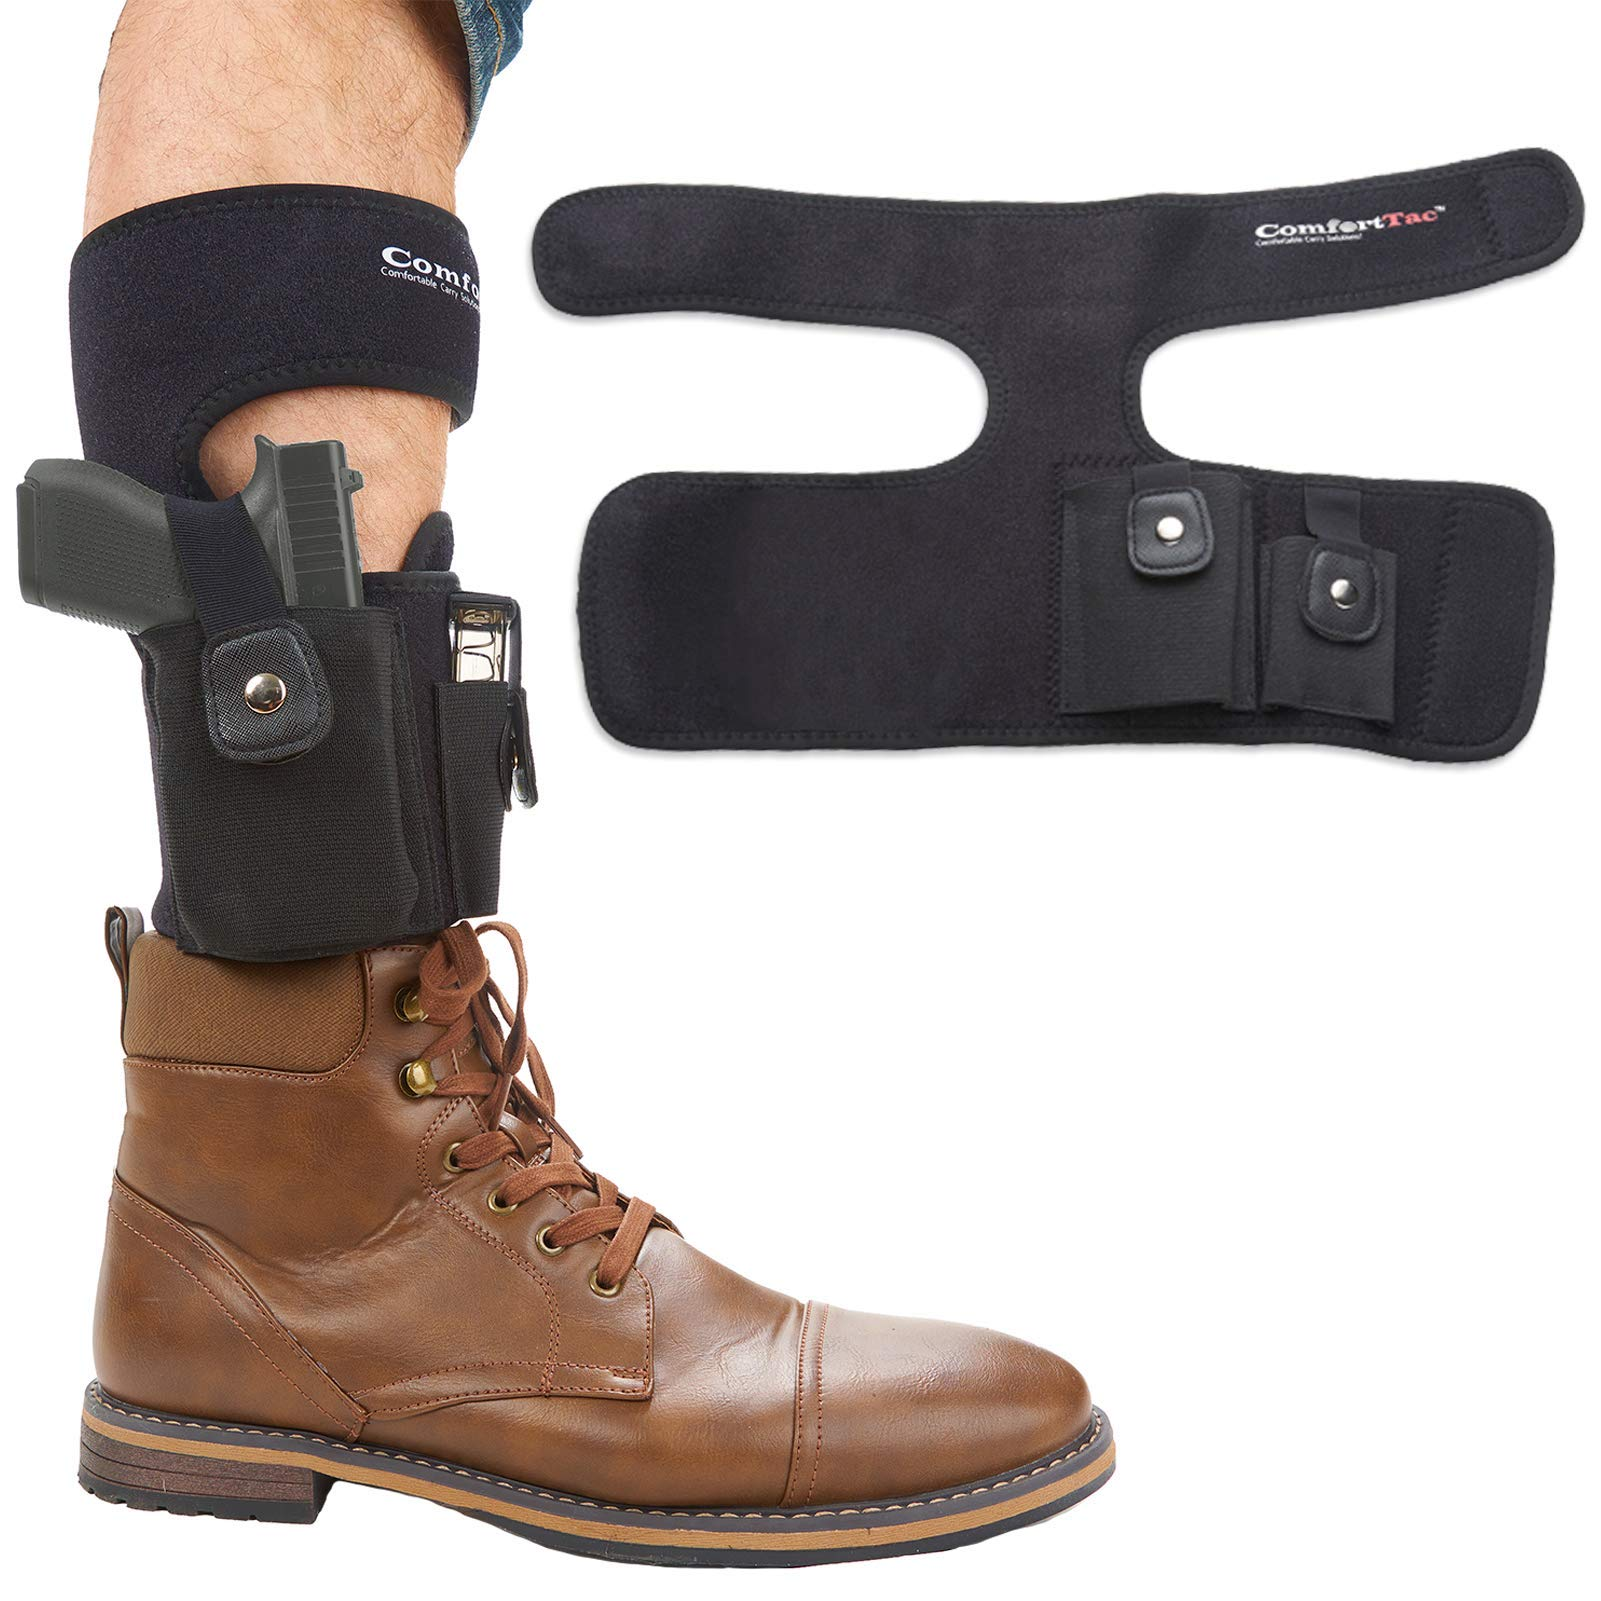 ComfortTac Ankle Holster With Calf Strap and Spare Magazine Pouch For Concealed Carry - One Size Fits Most - Compatible w/ Glock 19, 26, 36, 42, 43, S&W Shield, Bodyguard 380, Ruger LCP, LC9, And More